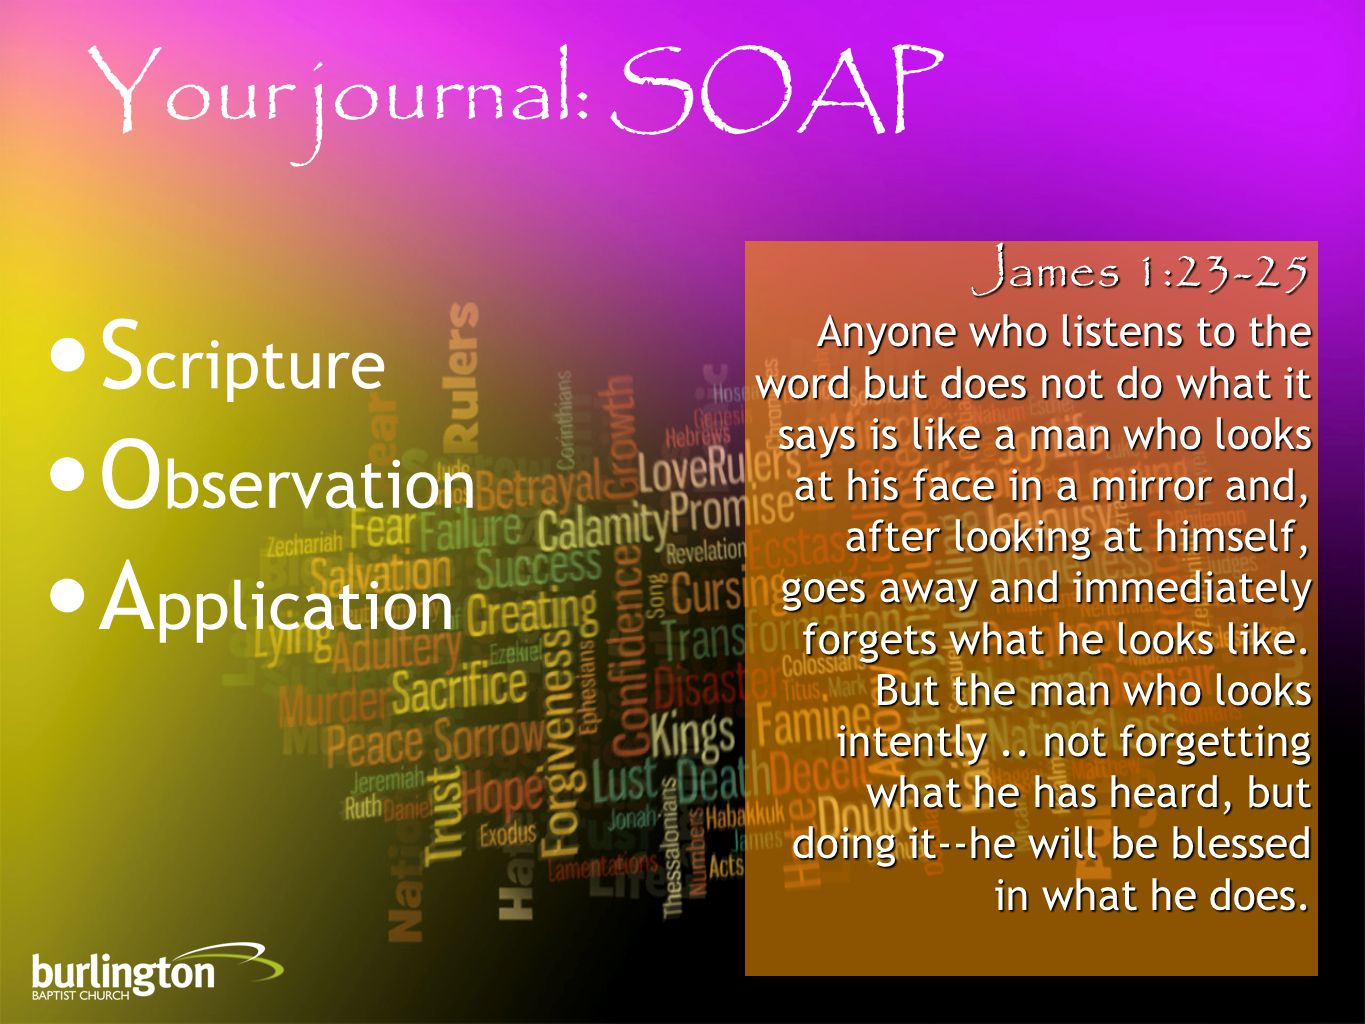 James 1:23-25 Anyone who listens to the word but does not do what it says is like a man who looks at his face in a mirror and, after looking at himself, goes away and immediately forgets what he looks like.